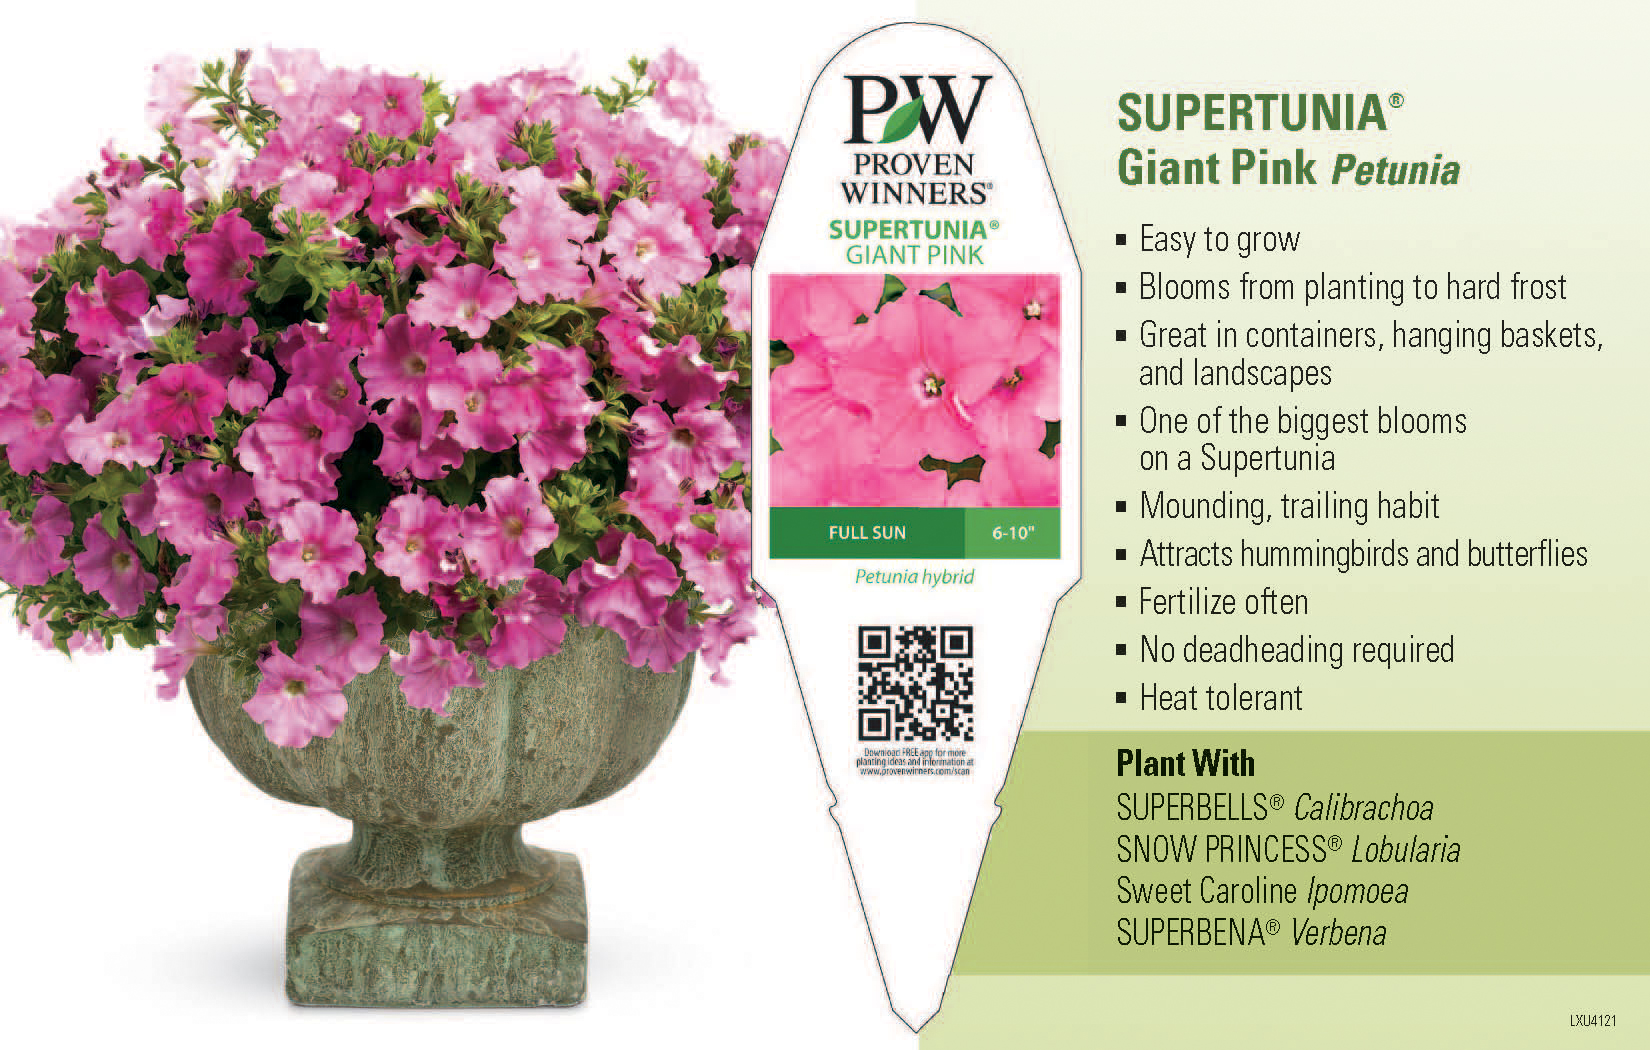 Supertunia Giant Pink Petunia 11x7 Variety Benchcard Proven Winners